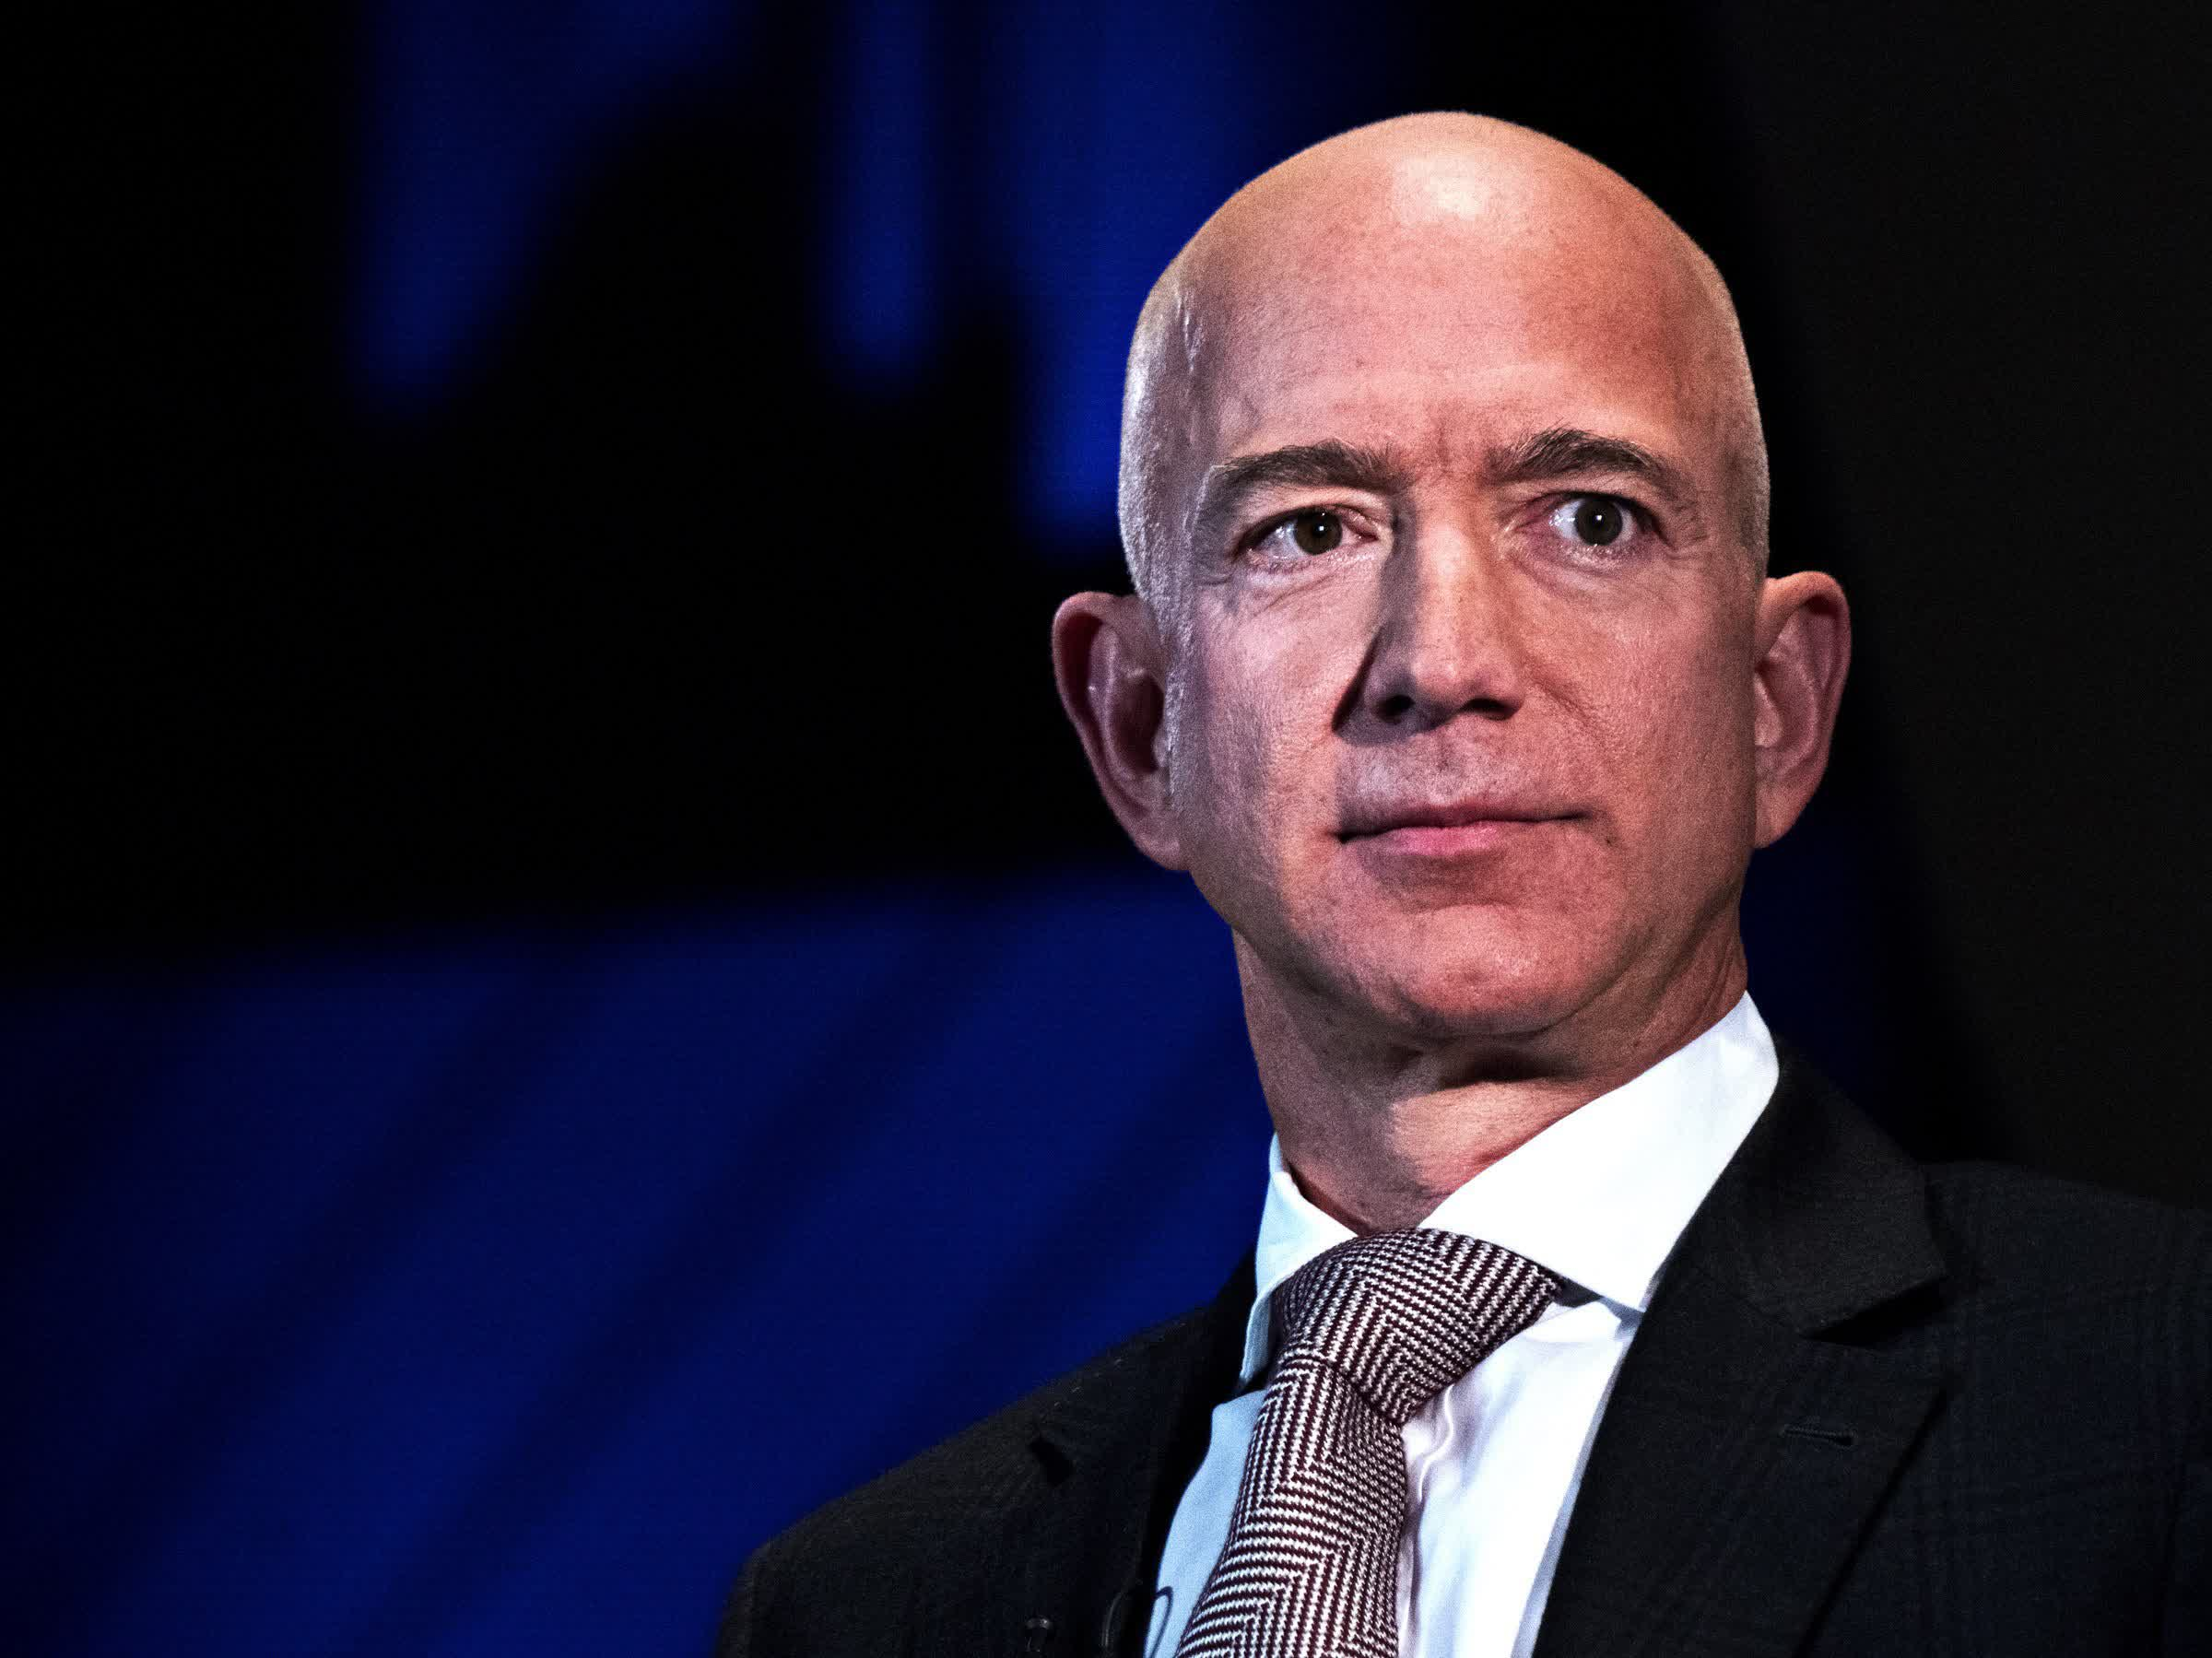 Biden blasts Amazon for not paying federal taxes, promises to 'put an end to that'